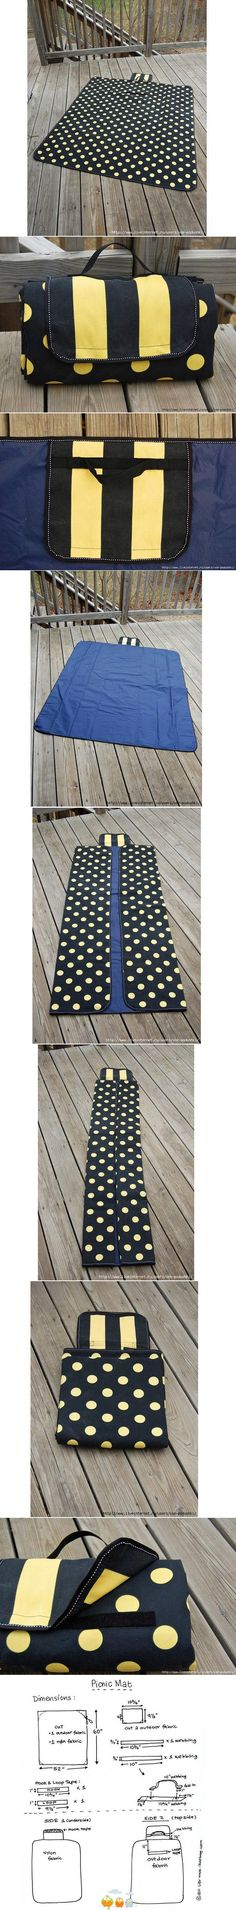 How to make Picnic Mat step by step DIY tutorial instructions Sewing Hacks, Sewing Tutorials, Sewing Crafts, Sewing Projects, Diy Projects, Free Tutorials, Picnic Quilt, Picnic Mat, Picnic Blanket